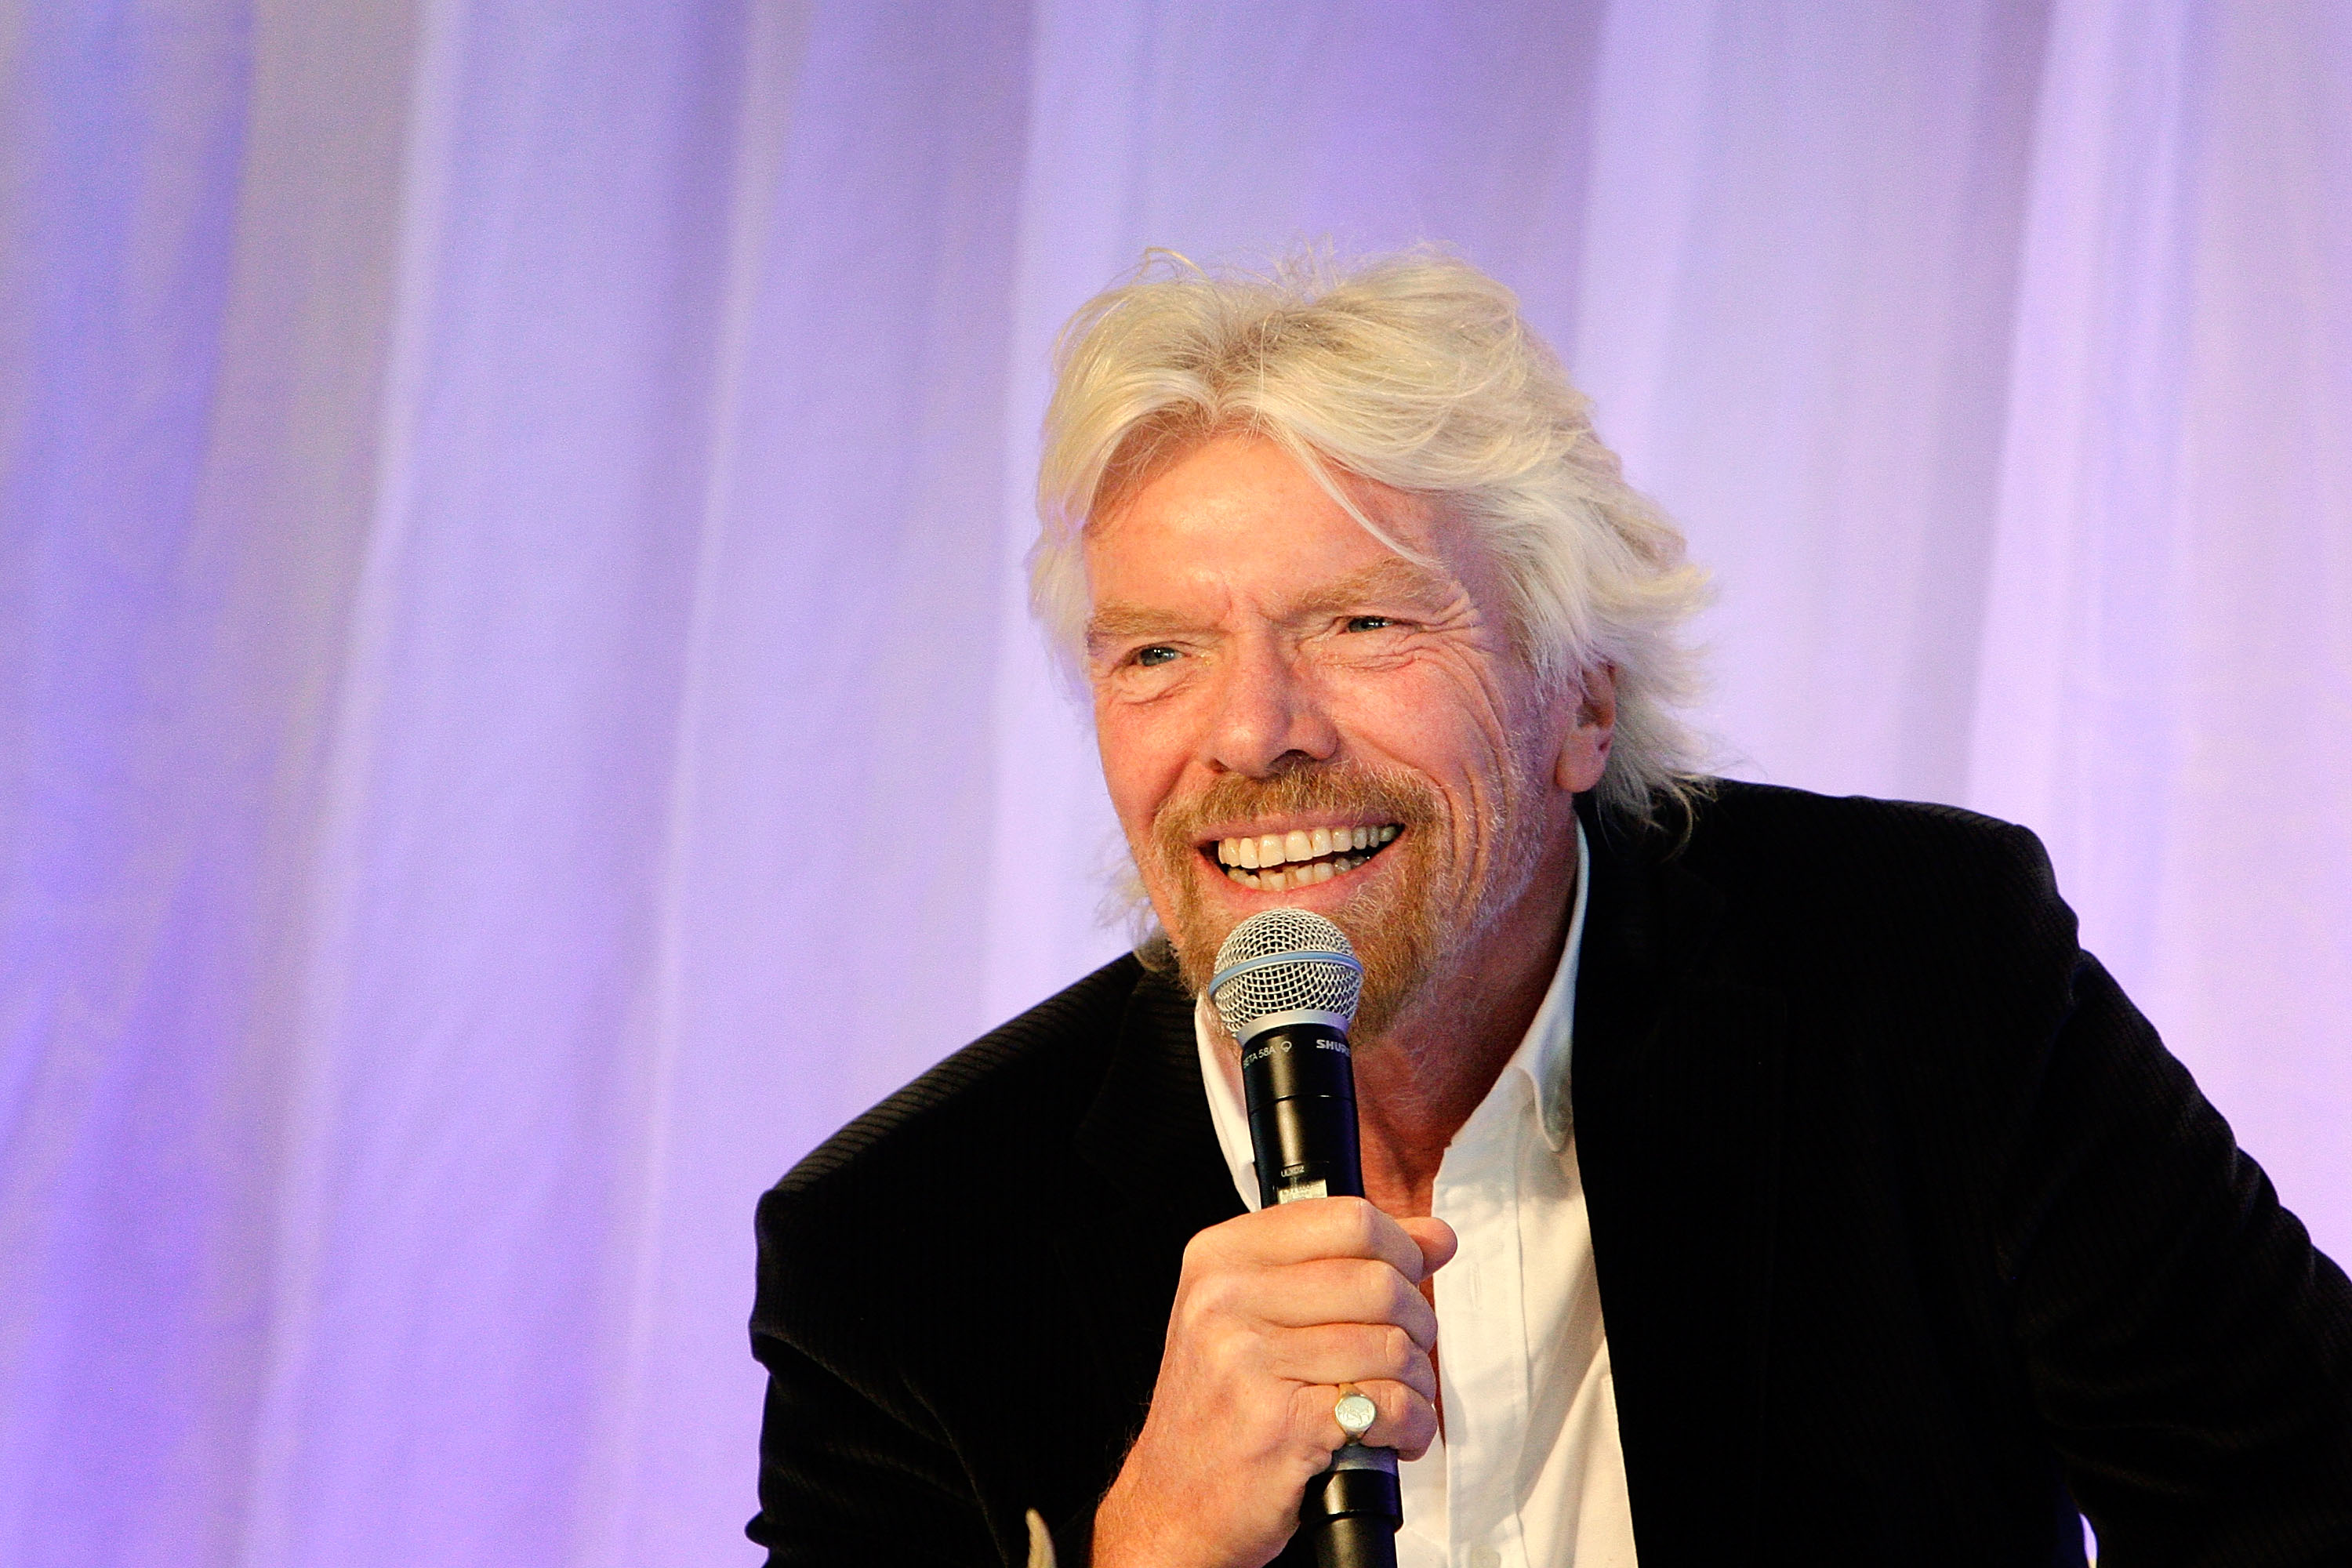 Richard Branson at the Talent Unleashed Awards 2015 in Sydney on Sept. 11, 2015.